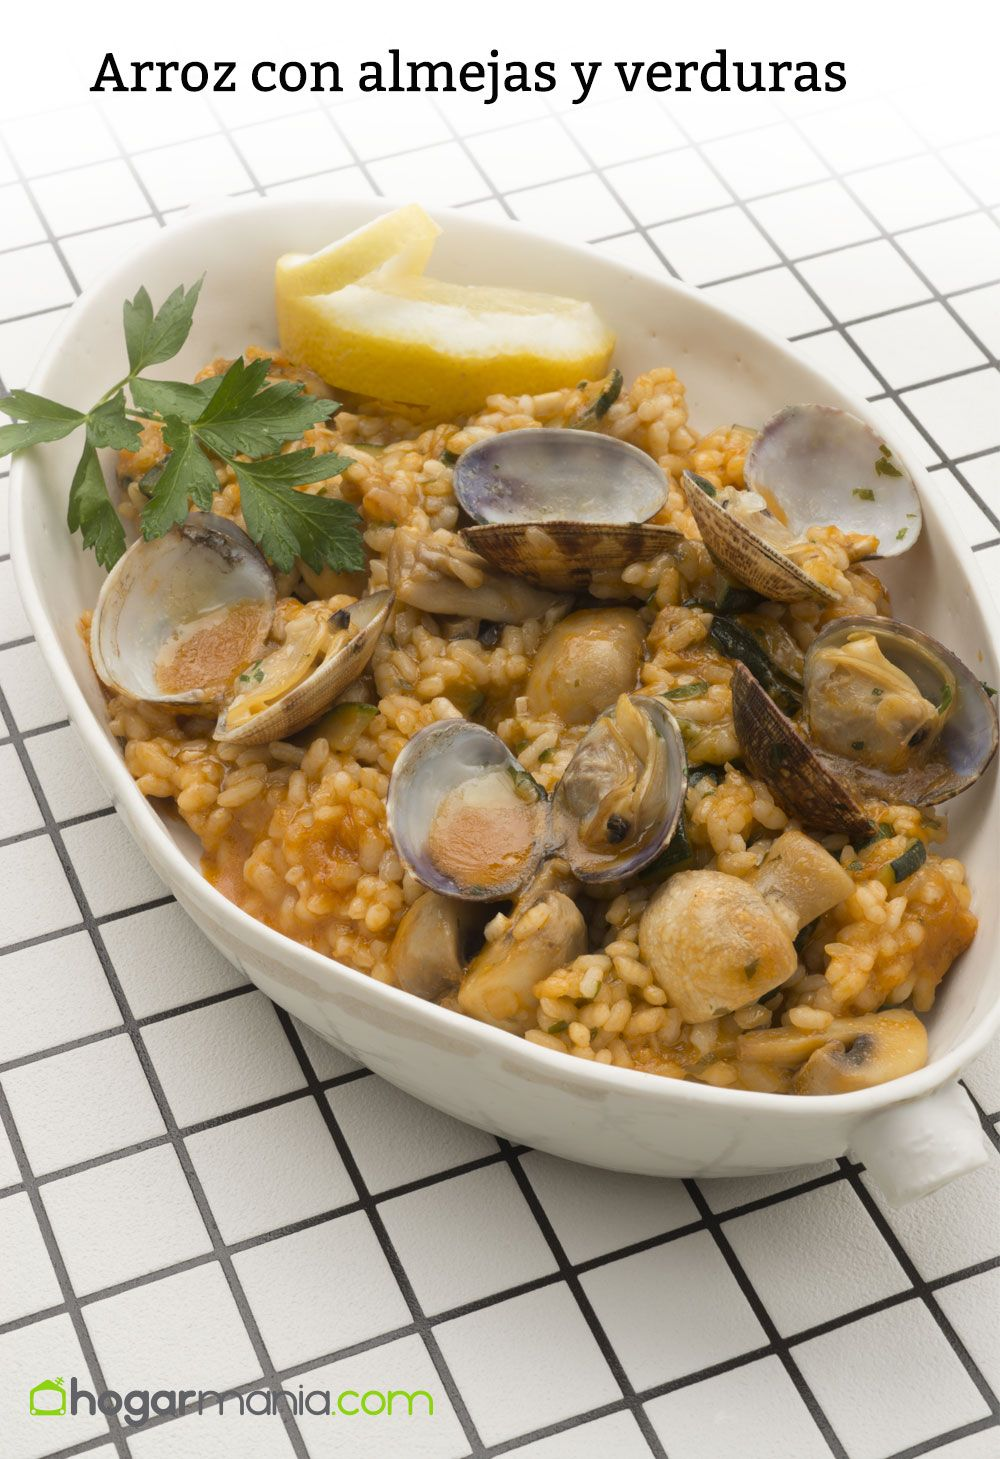 rice with mussels and vegetables